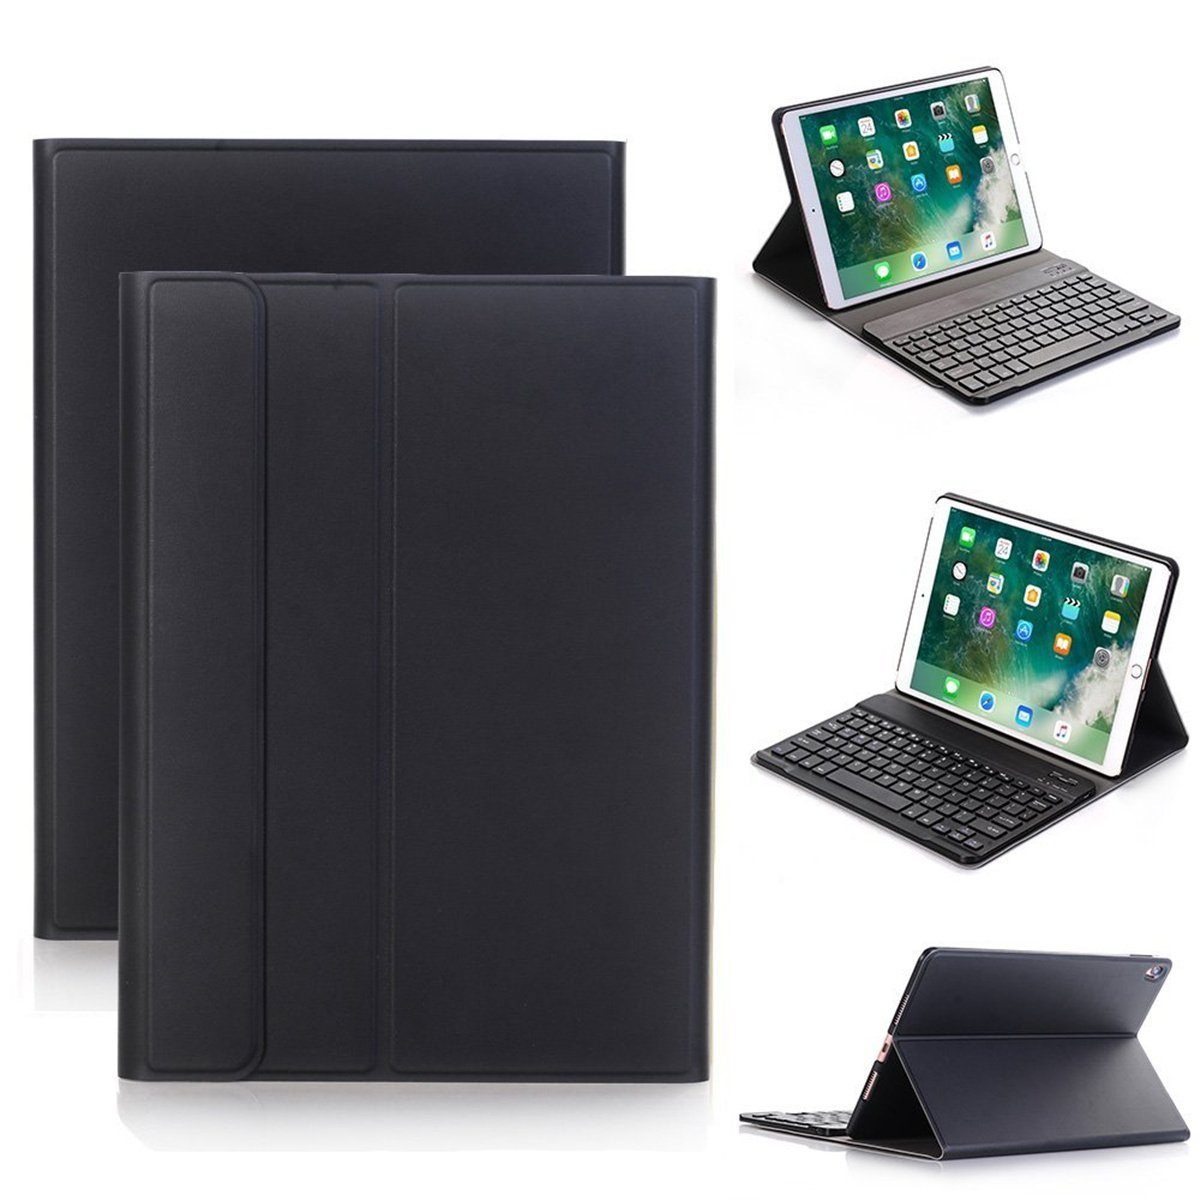 Wireless Bluetooth Keyboard Case Cover,Vacio 10.5 inch keyboard case PU Leather Smart Case Stand Folio Cover with Detachable Wireless Bluetooth Keyboard for ipad pro 10.5 (Black)